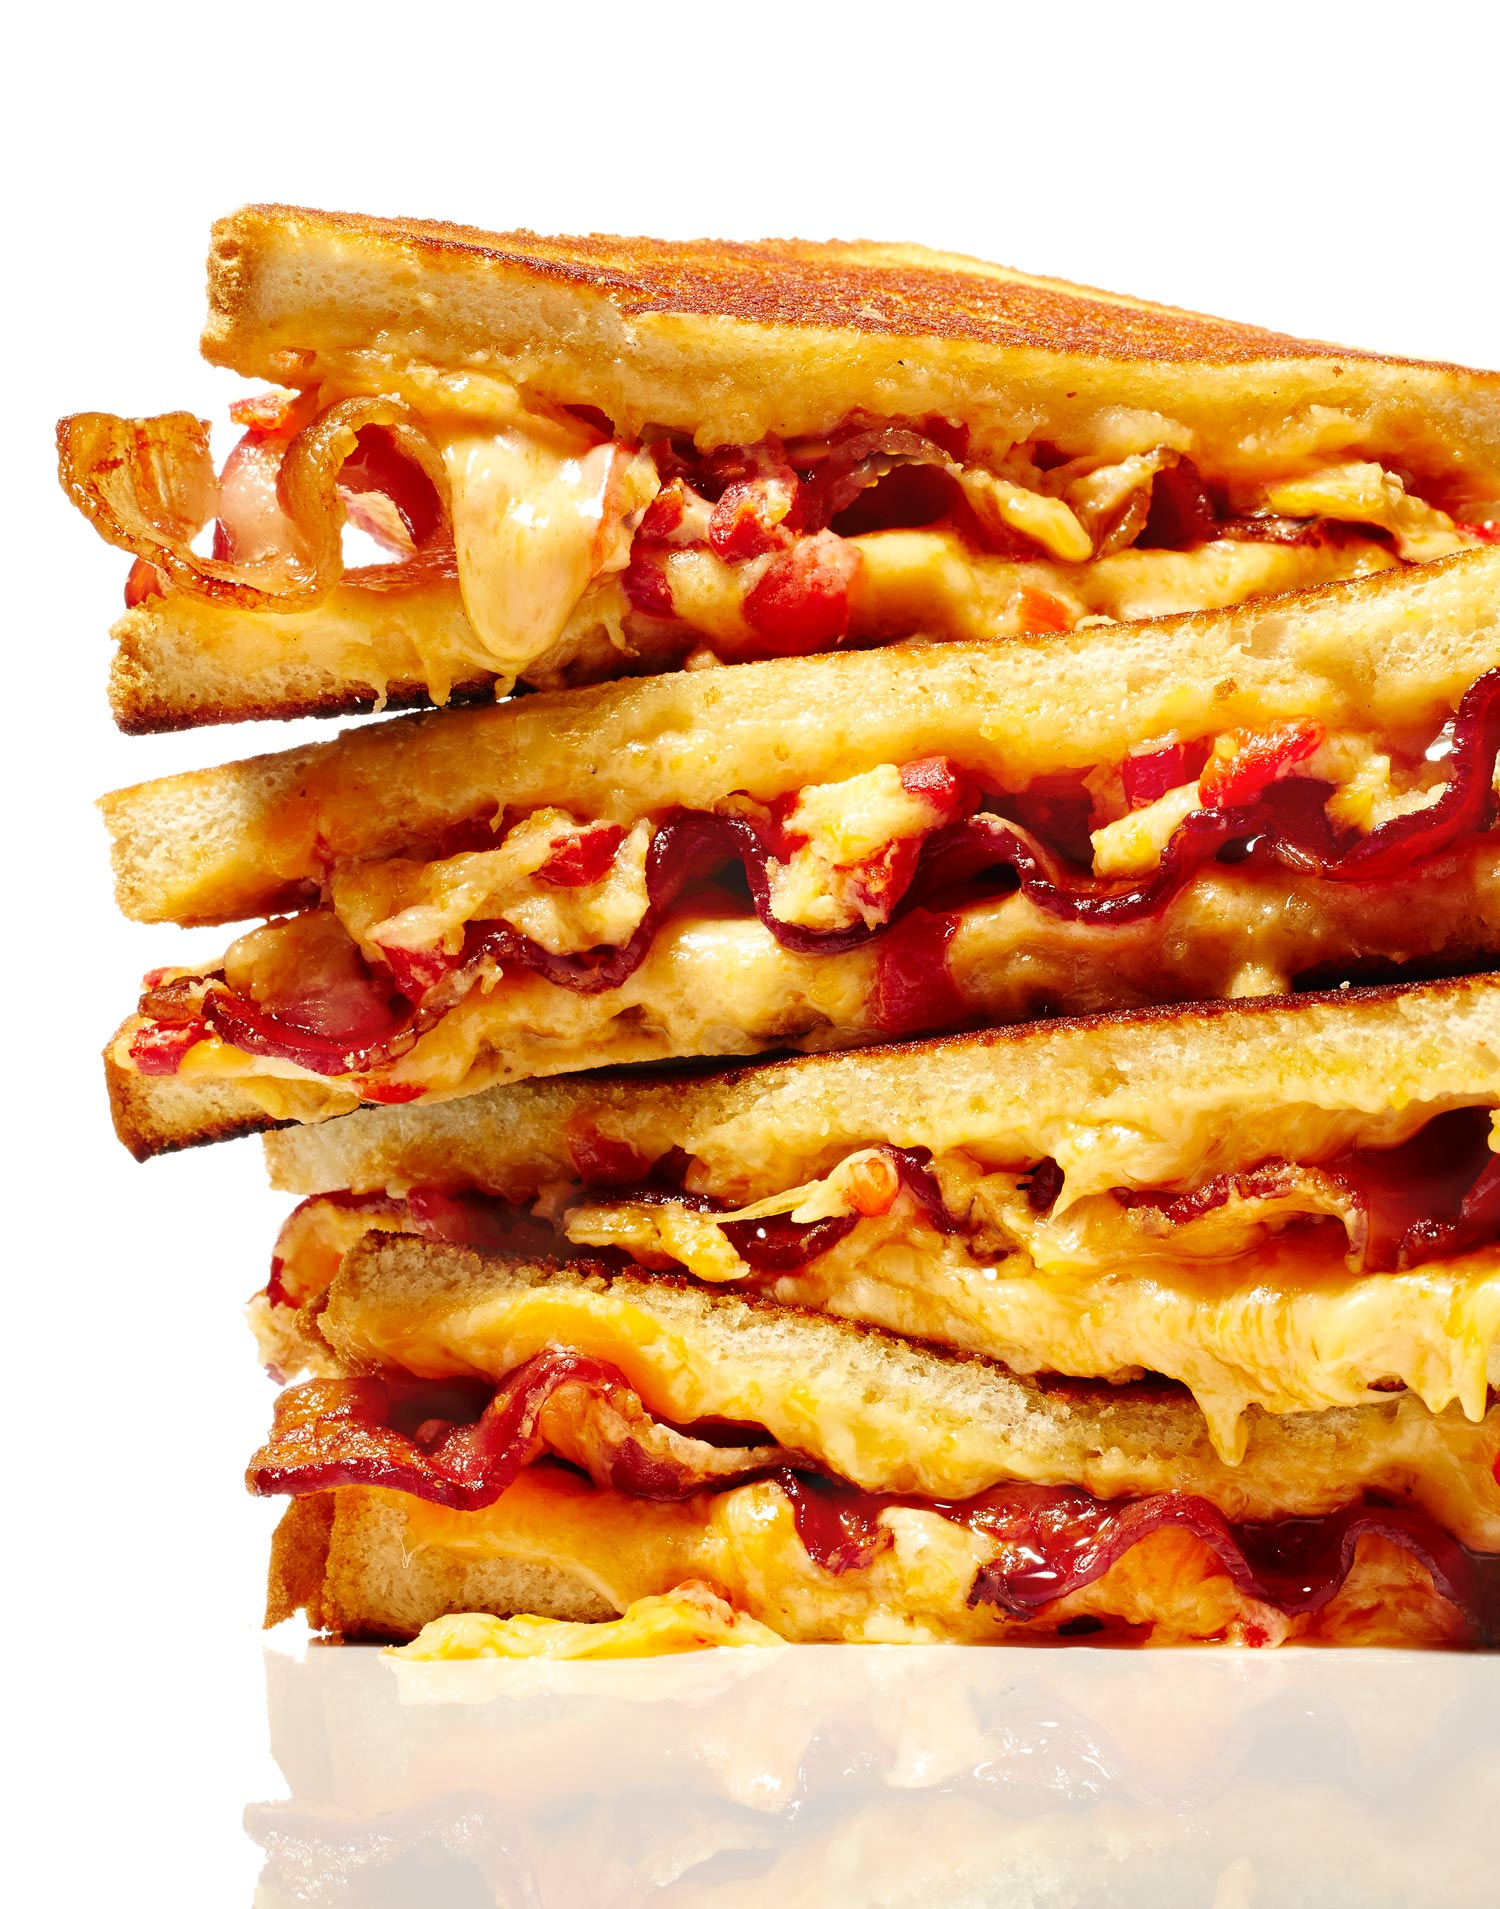 OPR-GrilledCheese-PimentoA-Hero-045-COMP